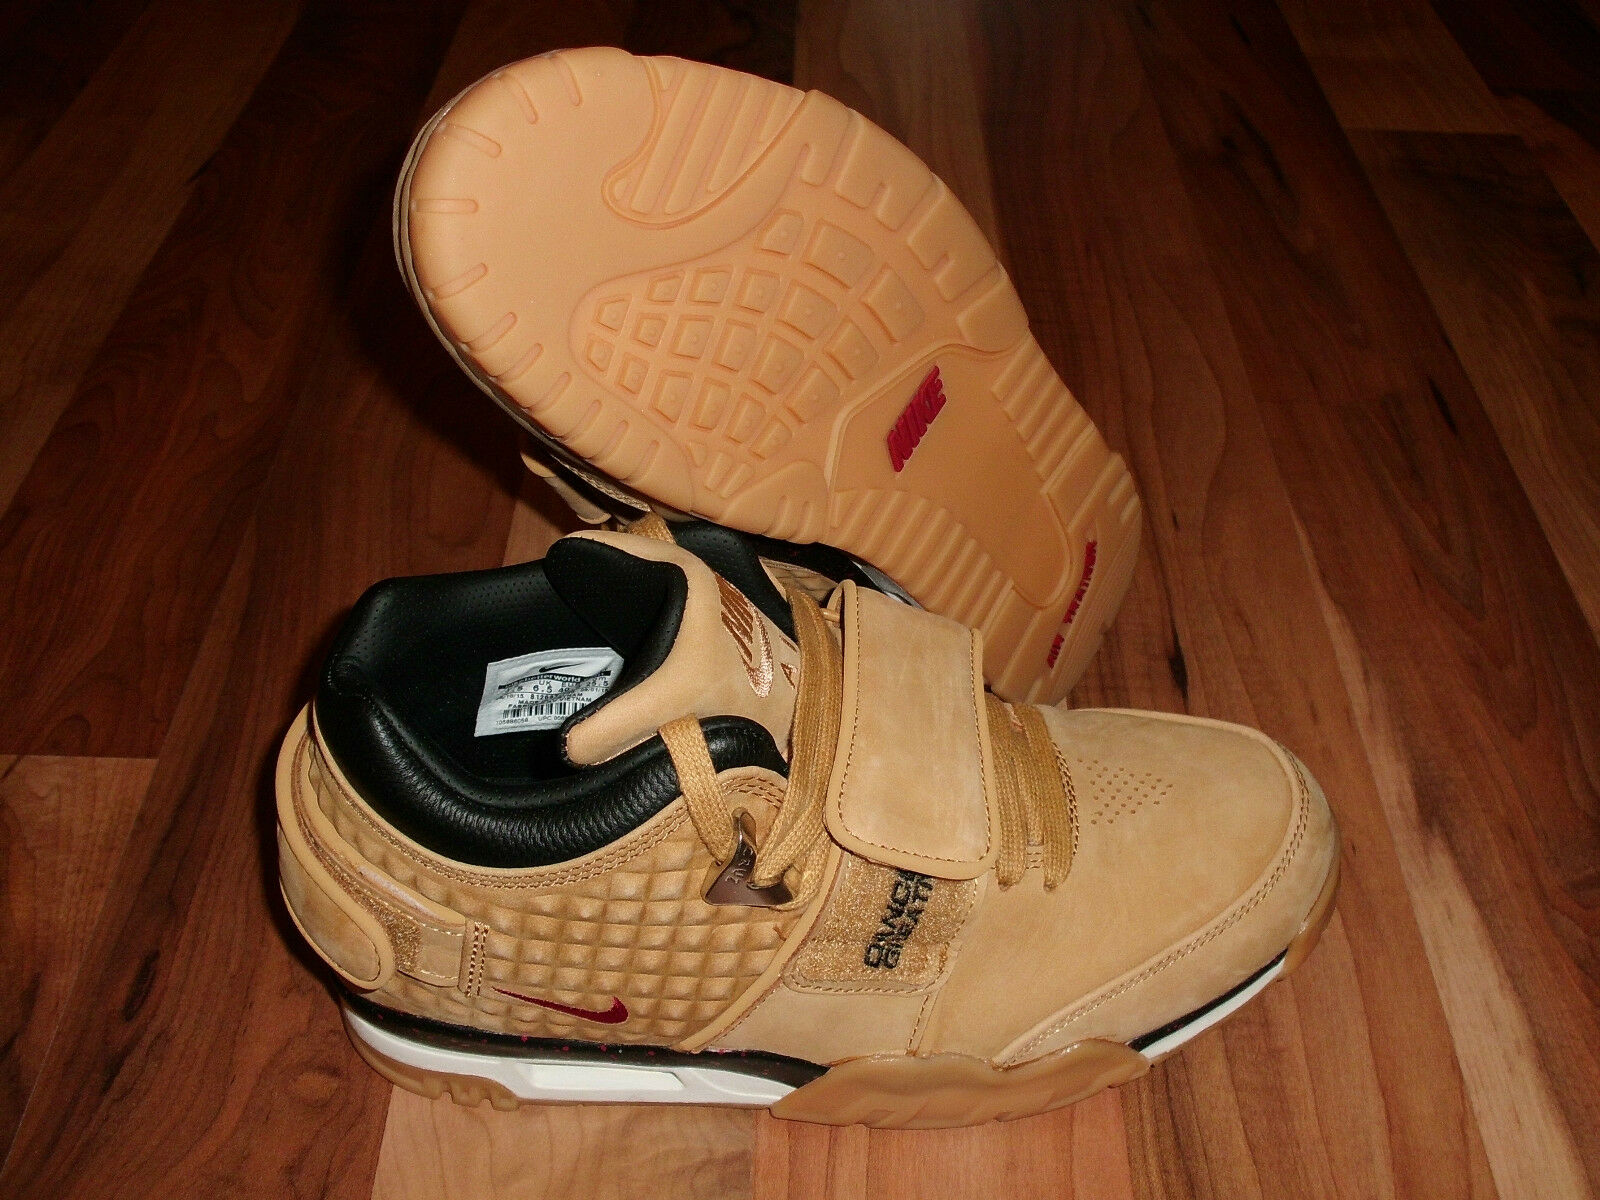 Nike Air Trainer Victor Cruz PRM HAYSTACK WHEAT/RED/BLCK SZ US 7.5, 8,12